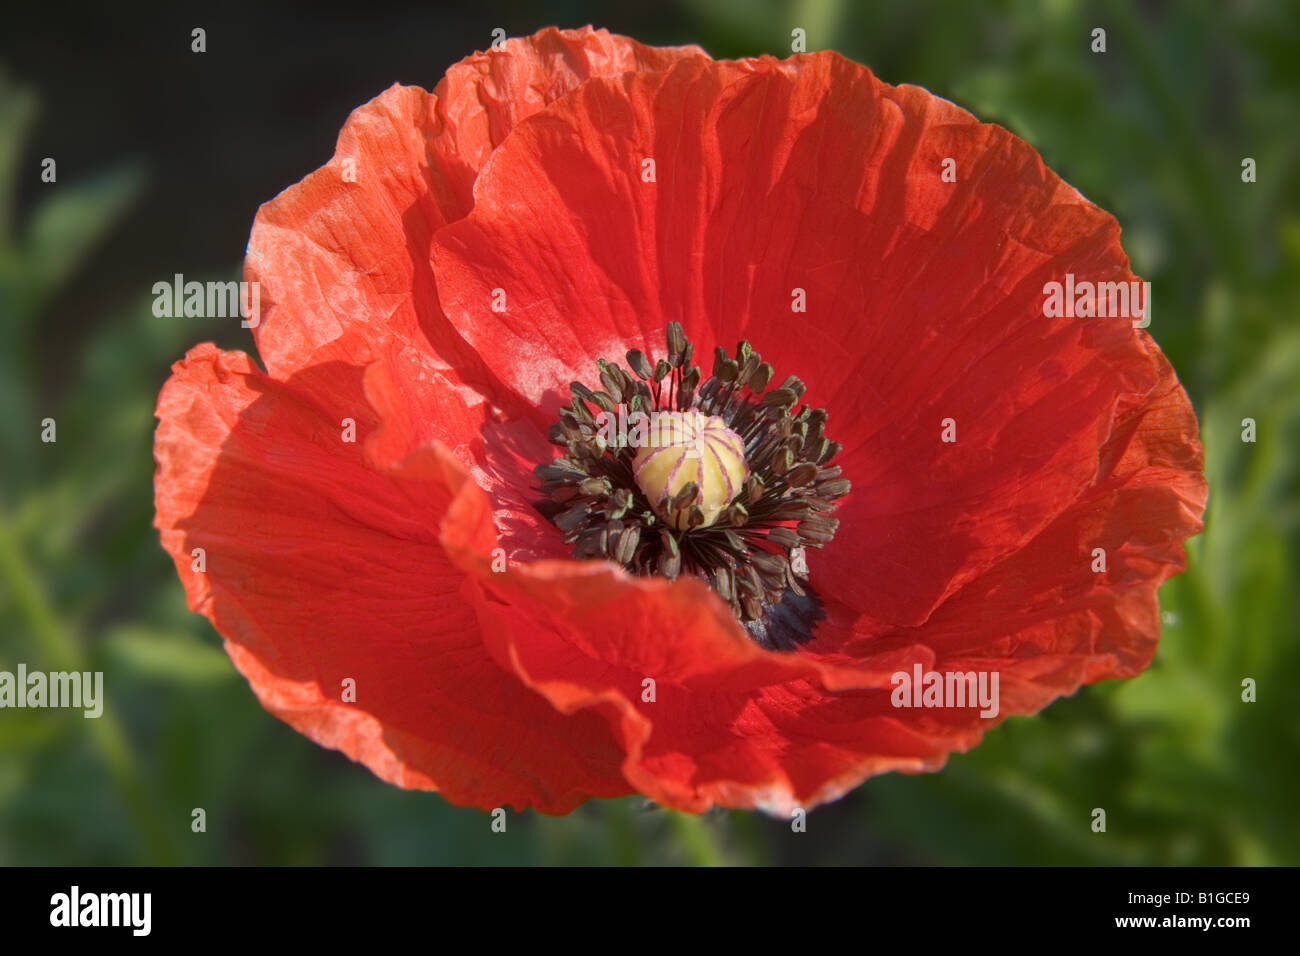 Poppy flower stock photos poppy flower stock images alamy red poppy flower mightylinksfo